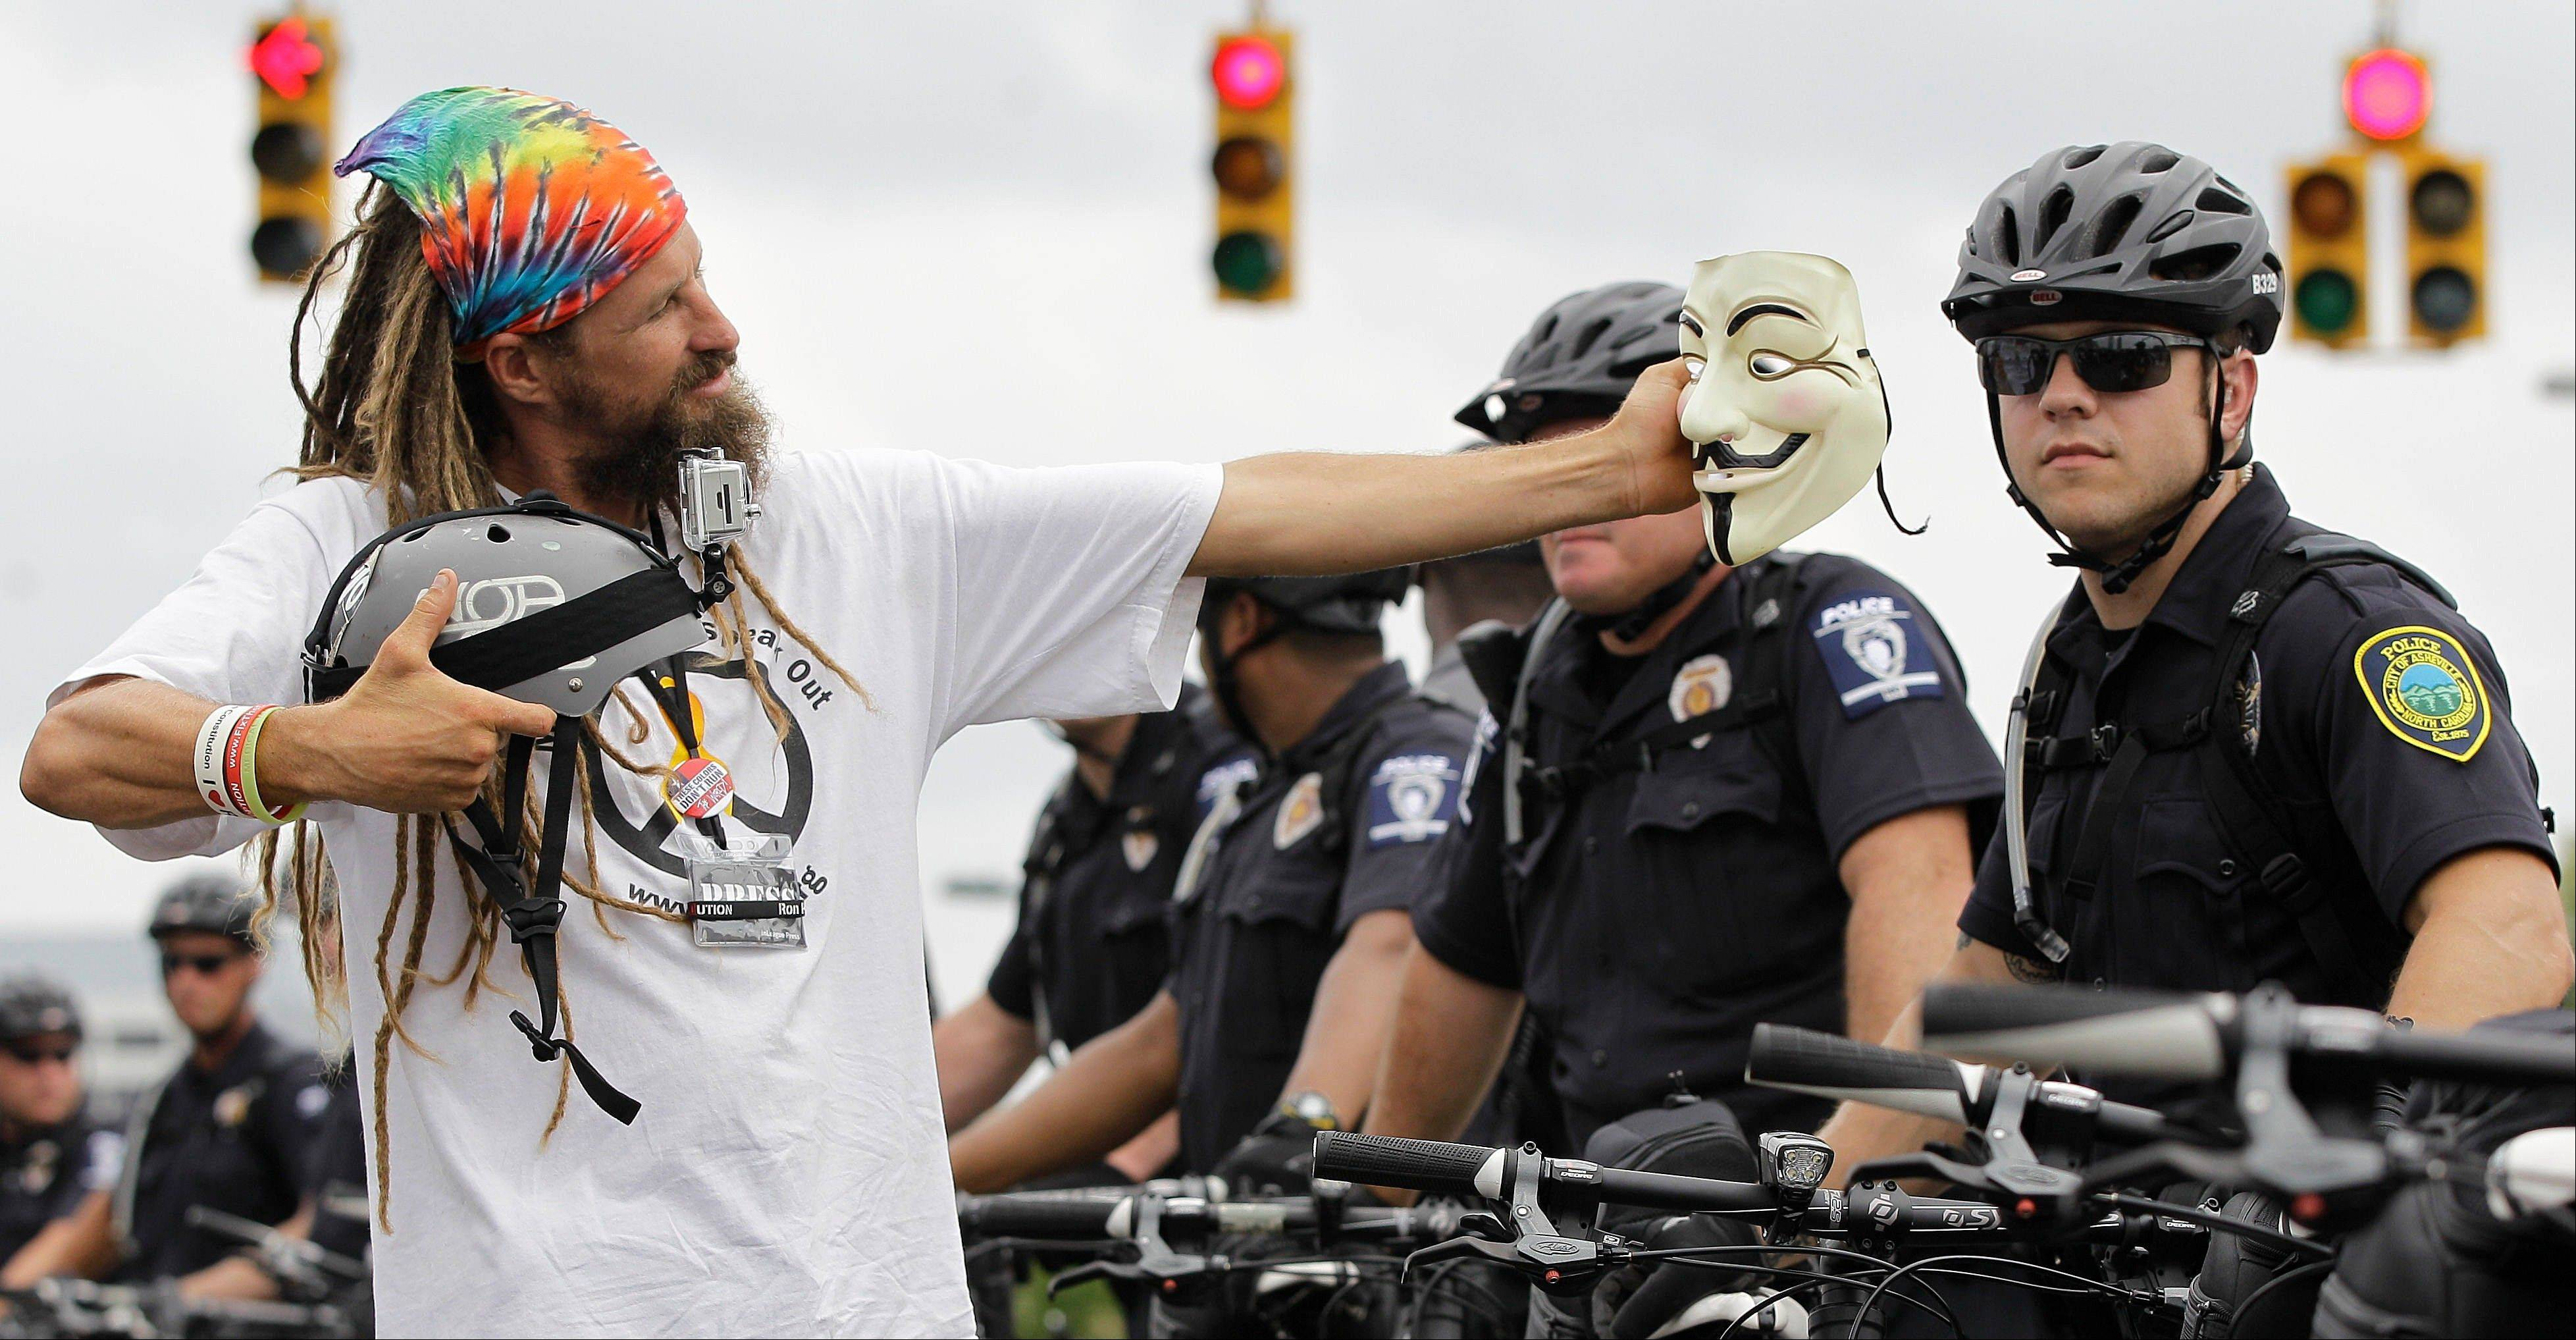 An Occupy Demonstrator takes a photo with his mask during an unscheduled protest march, Tuesday, Sept. 4, 2012, in Charlotte, N.C. The Democratic National Convention begins today.